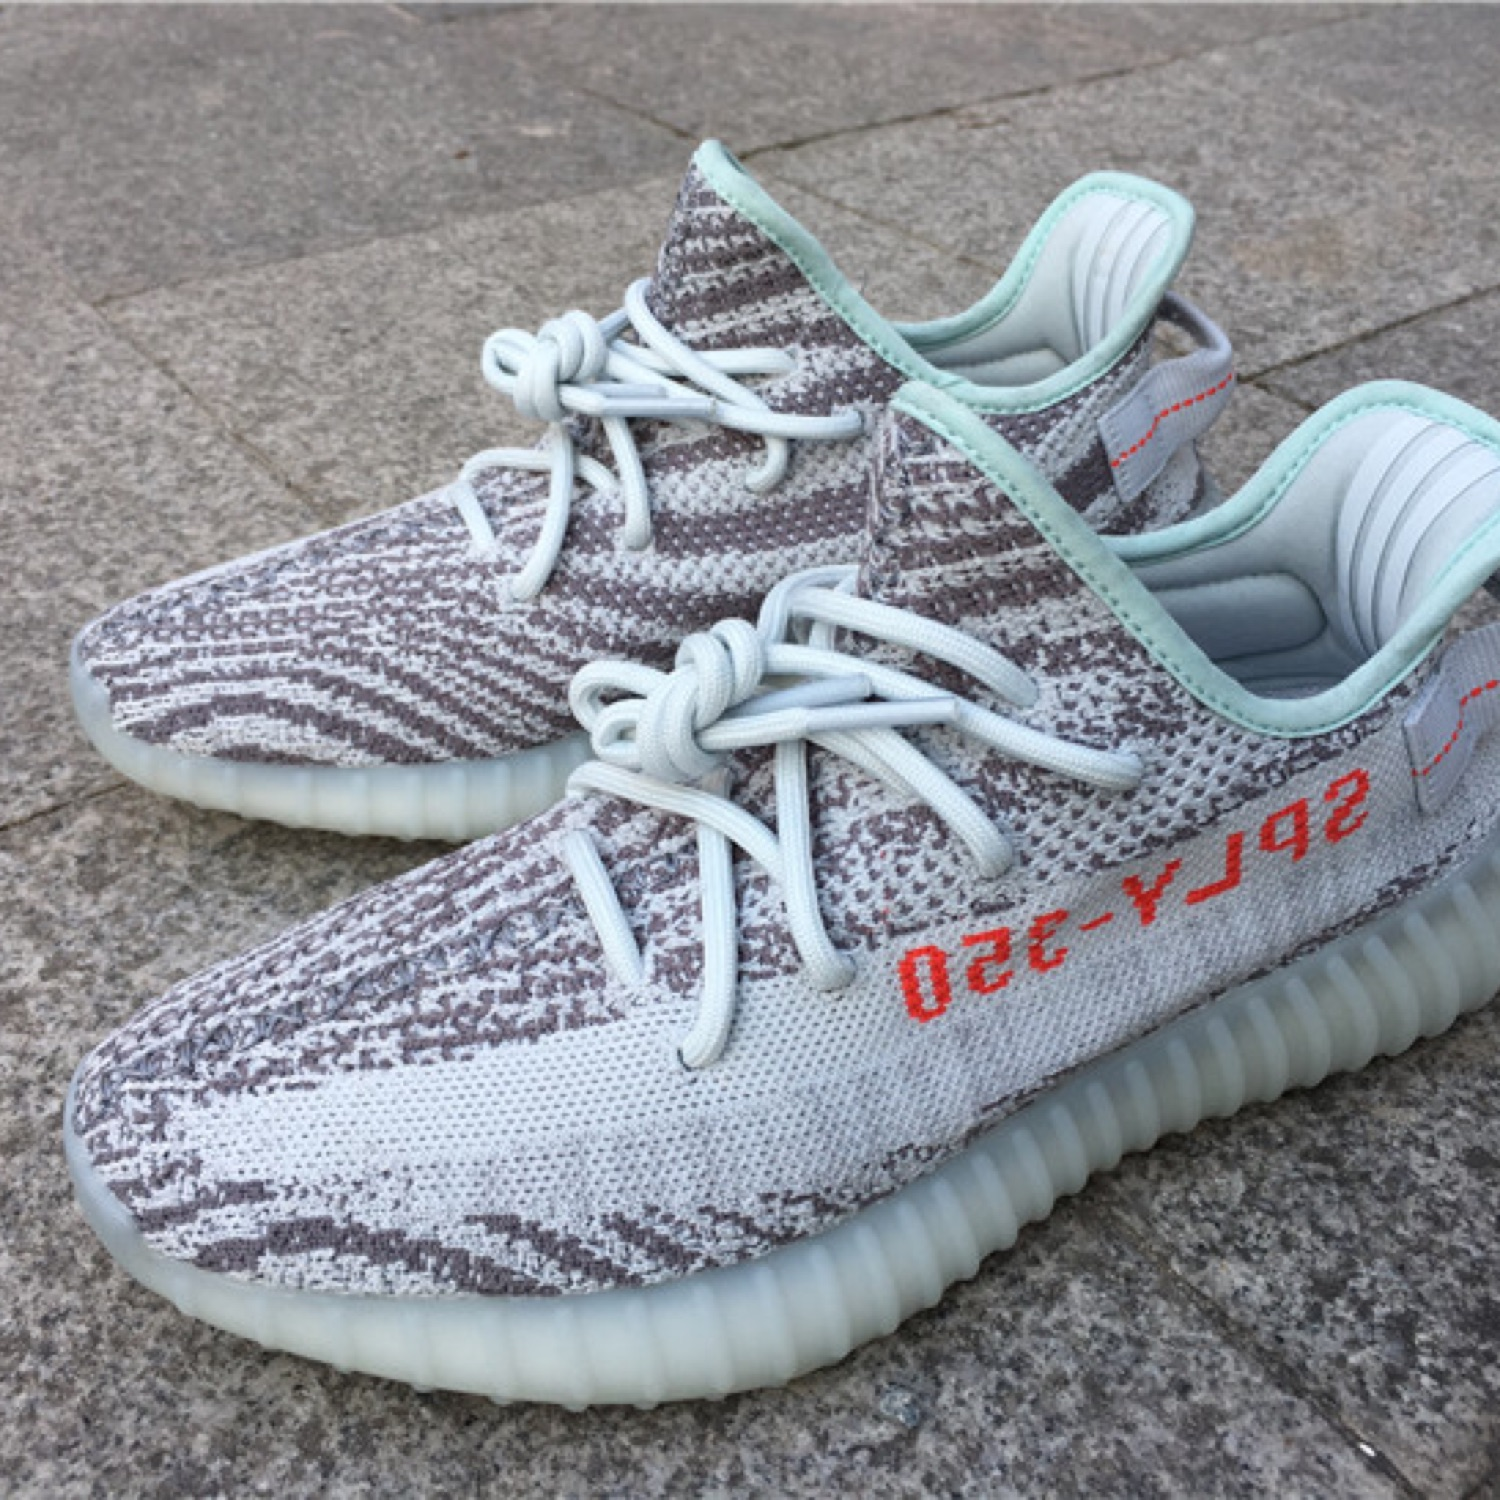 e3e1fc07 Yeezy Boost 350 V2 Blue Tint | Us: 7 | Uk: 6.5